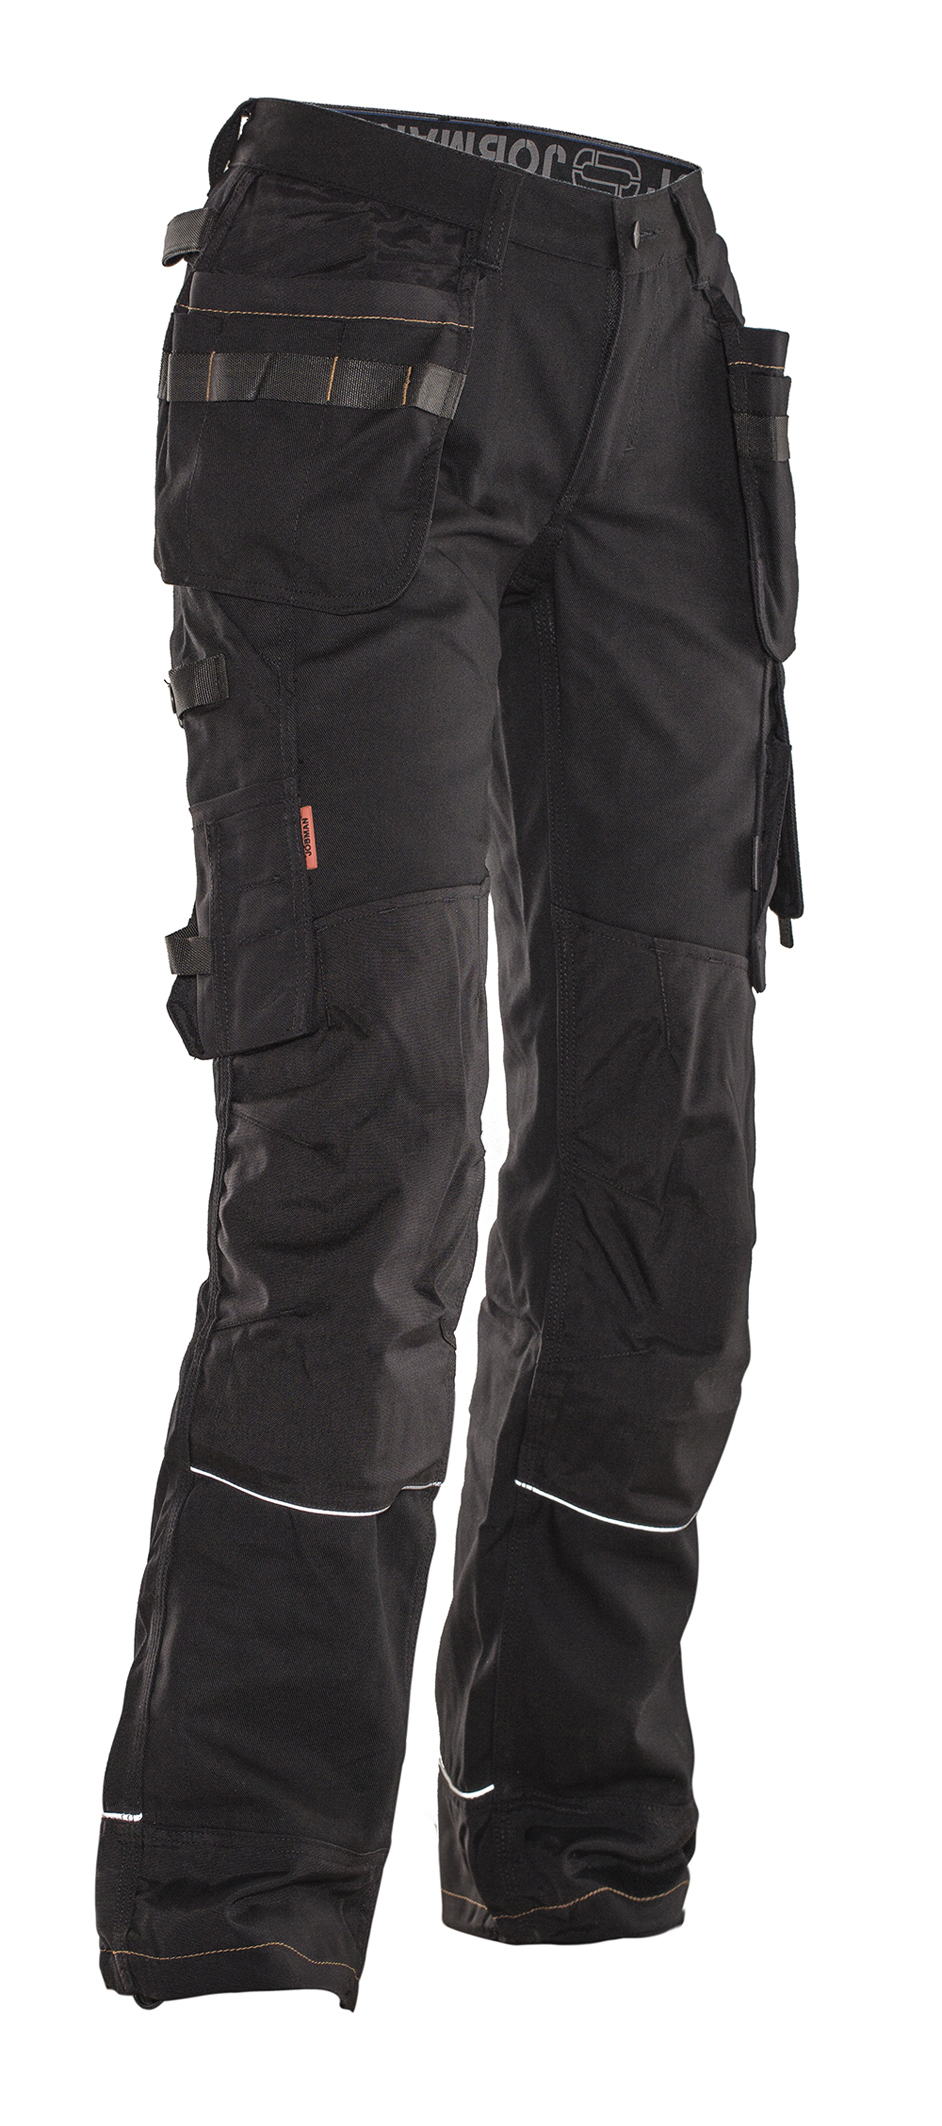 COMFORT pockettrouser CORE DAMES